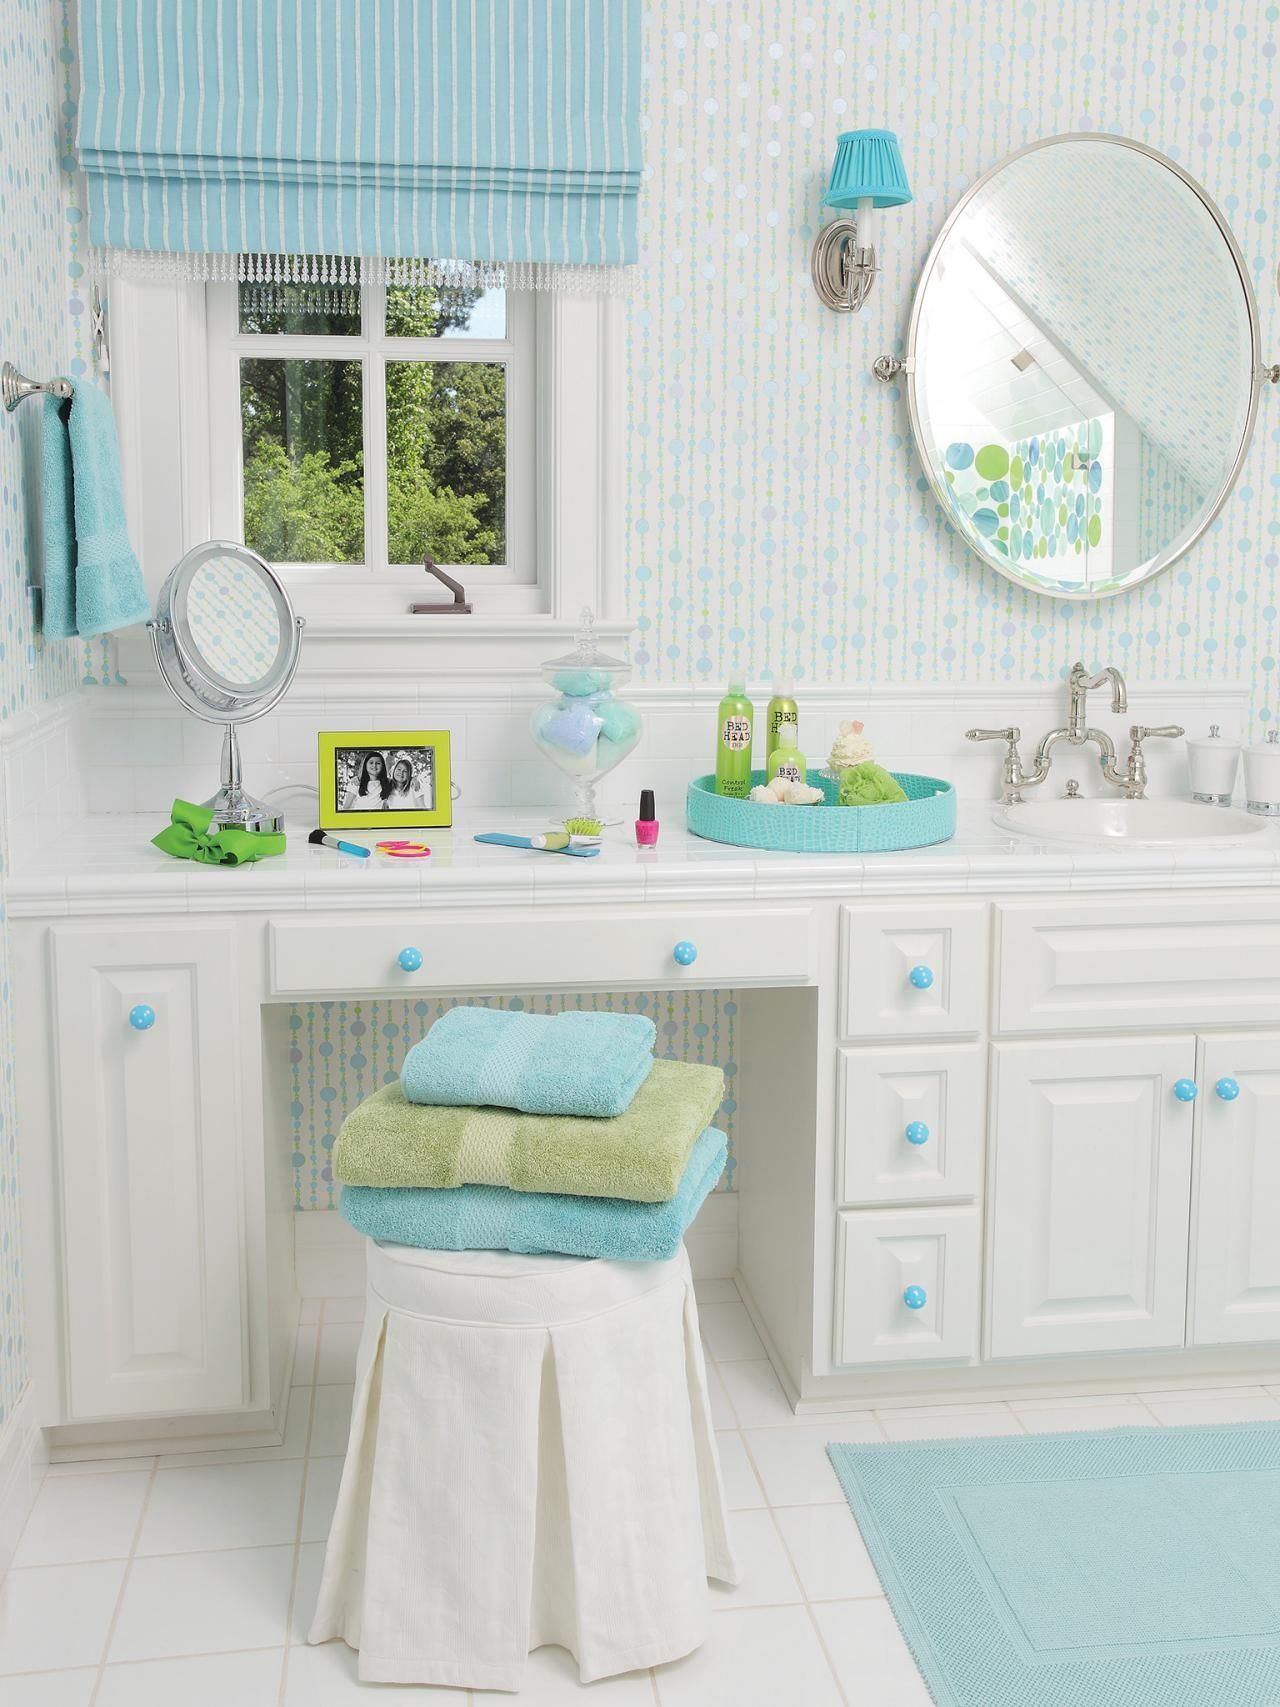 Tween Bathroom Decoramazing Ideas About Remodel House Decor With